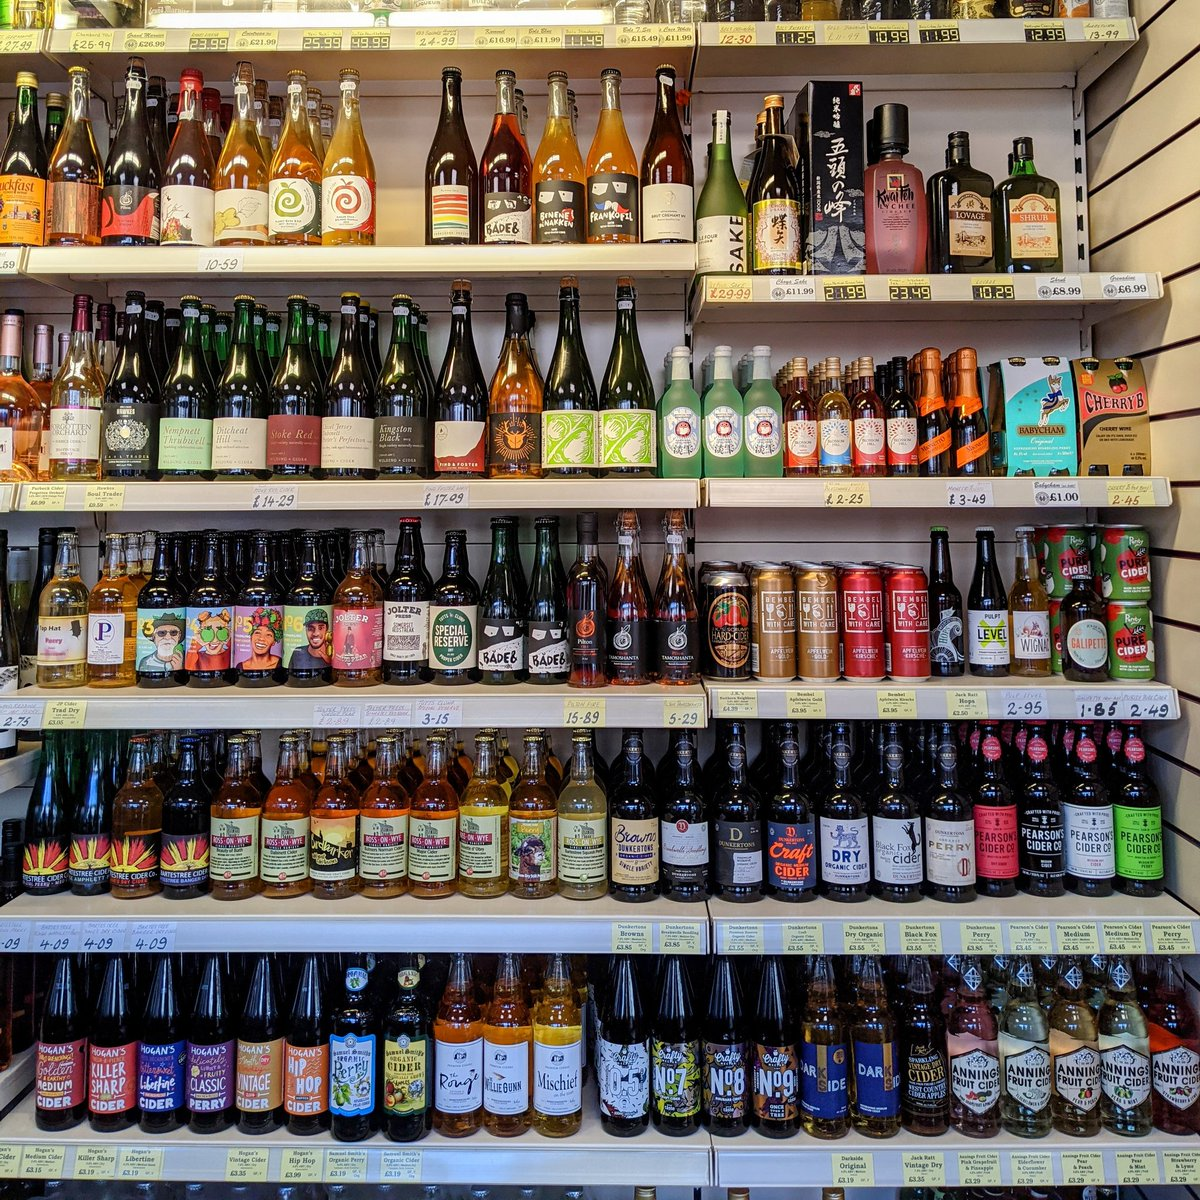 Birmingham Cider fans, if you need to stock up for the bank holiday weekend, head down to @StirchleyWines. You'll find a great selection there. https://t.co/03JGl7mf5j